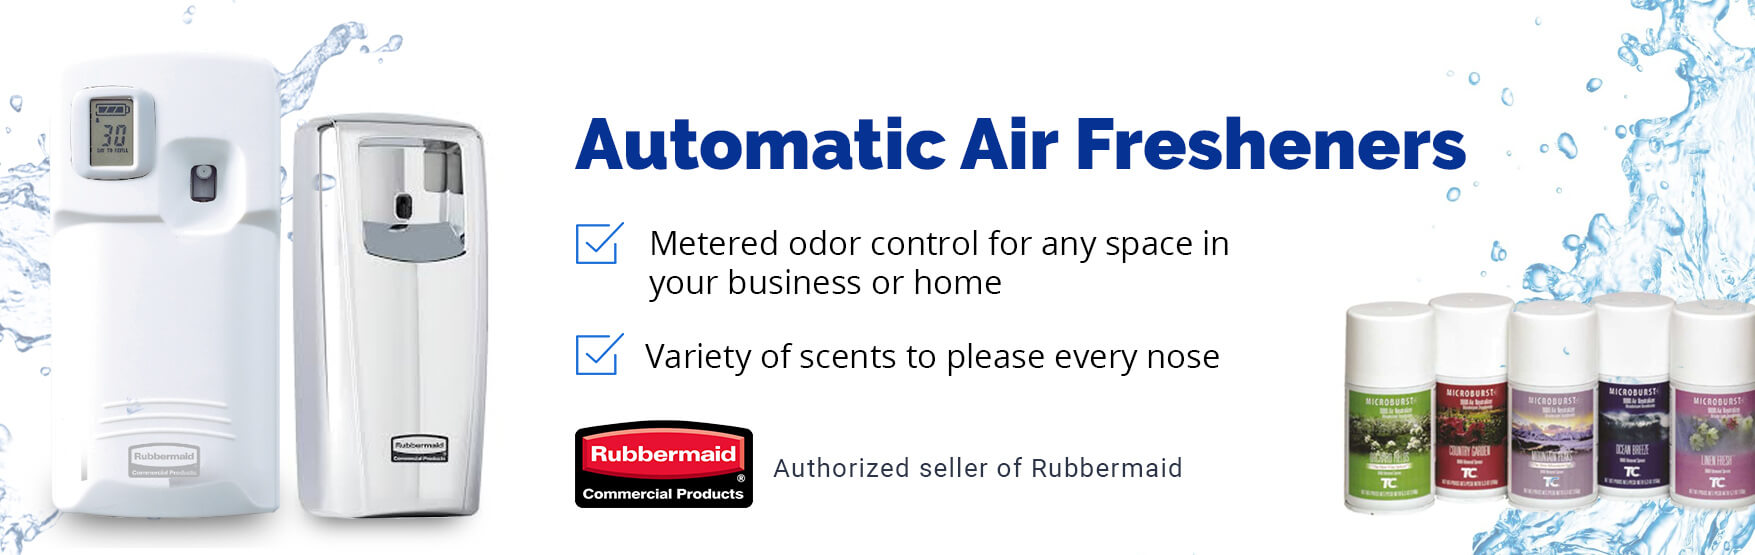 Automatic air fresheners from rubbermaid